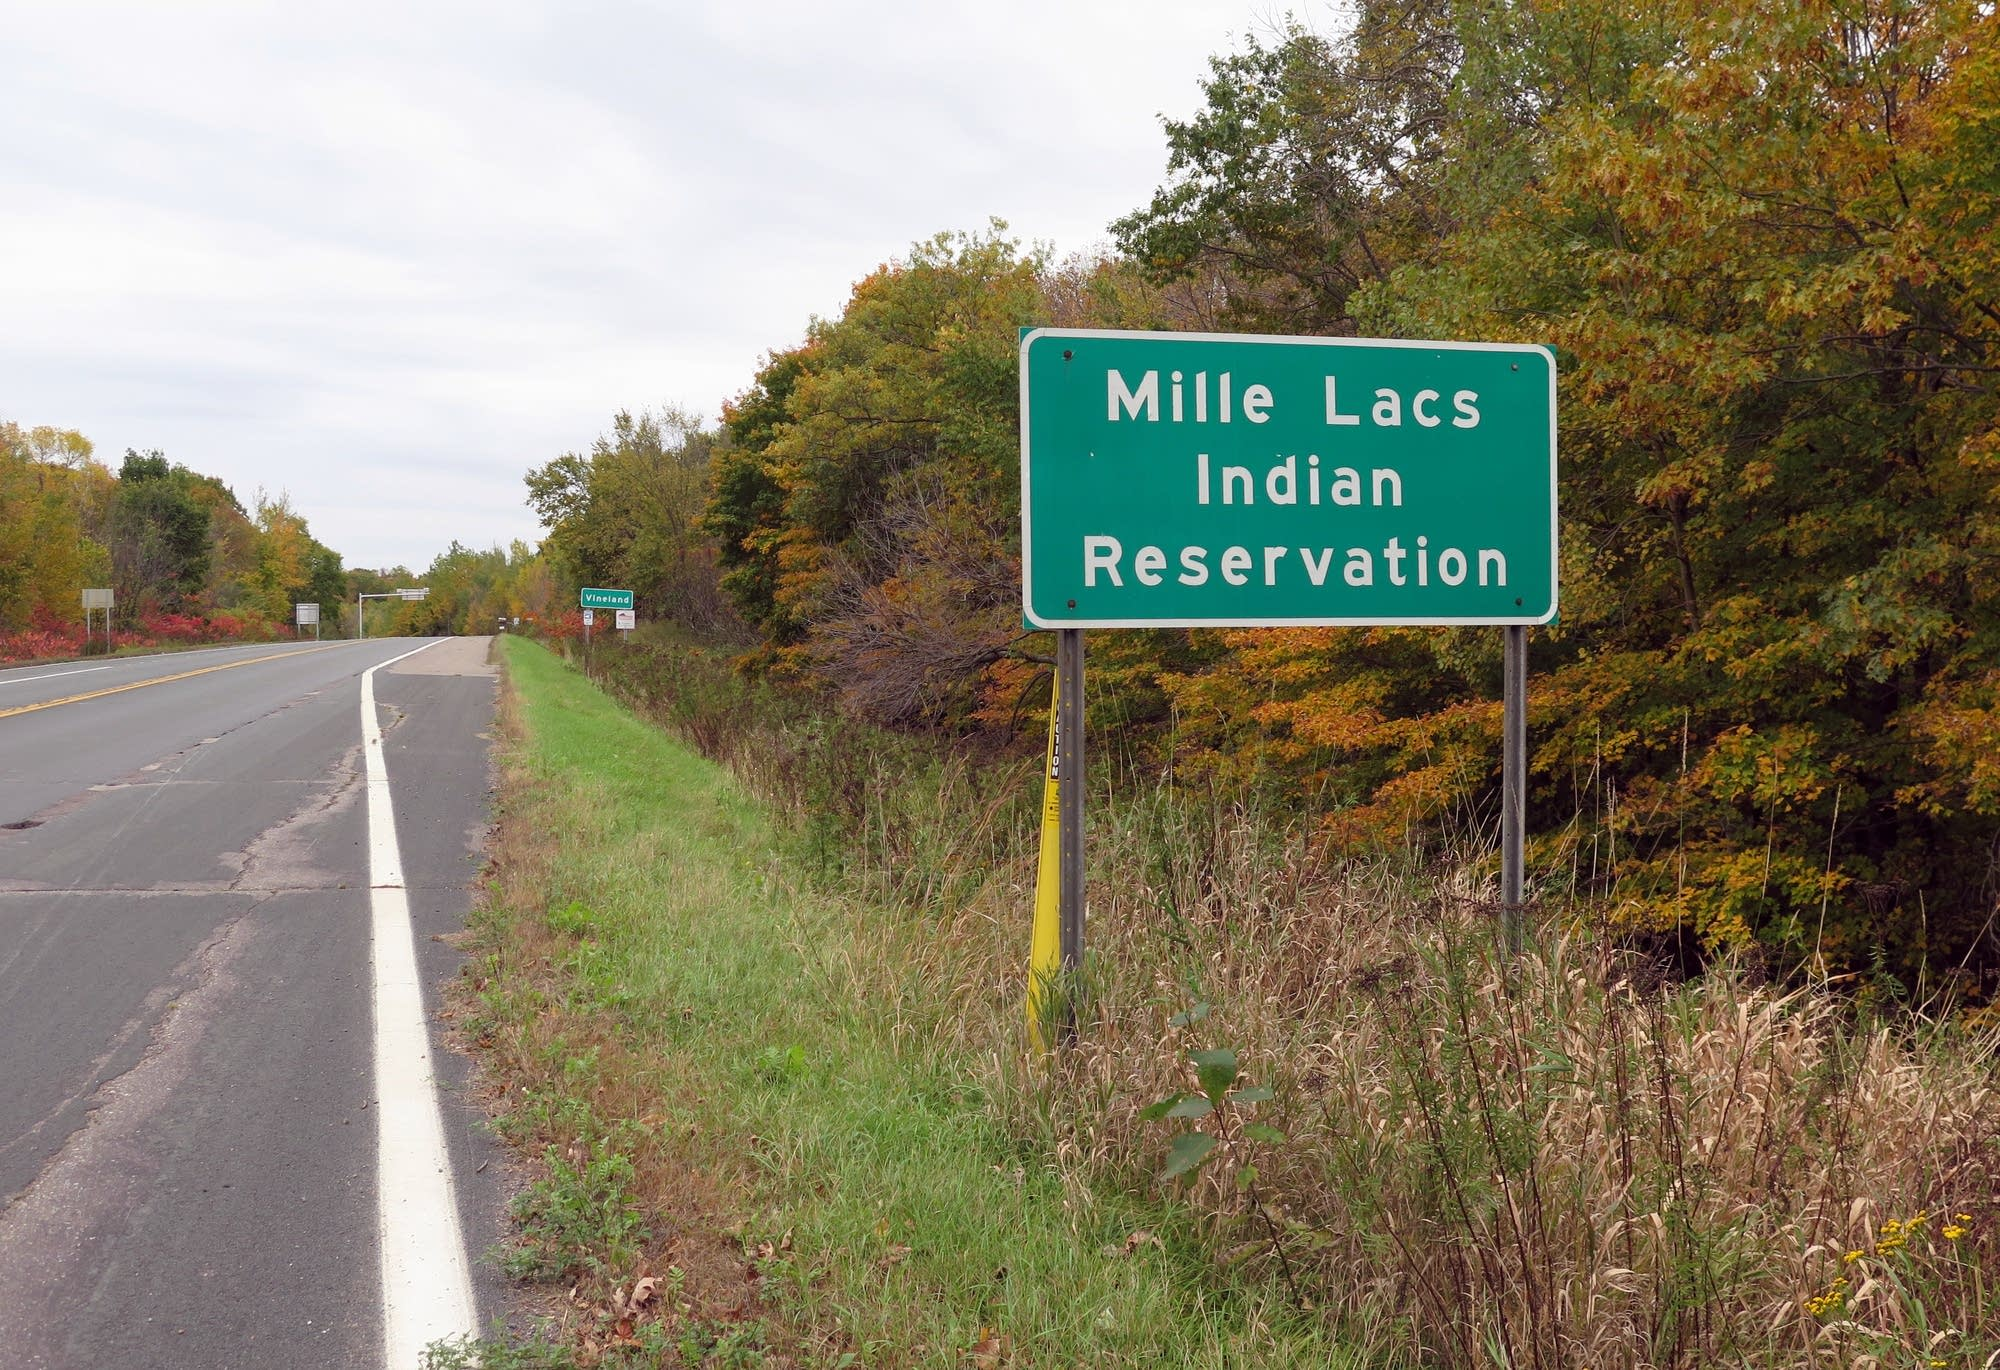 The Mille Lacs Band of Ojibwe's main reservation